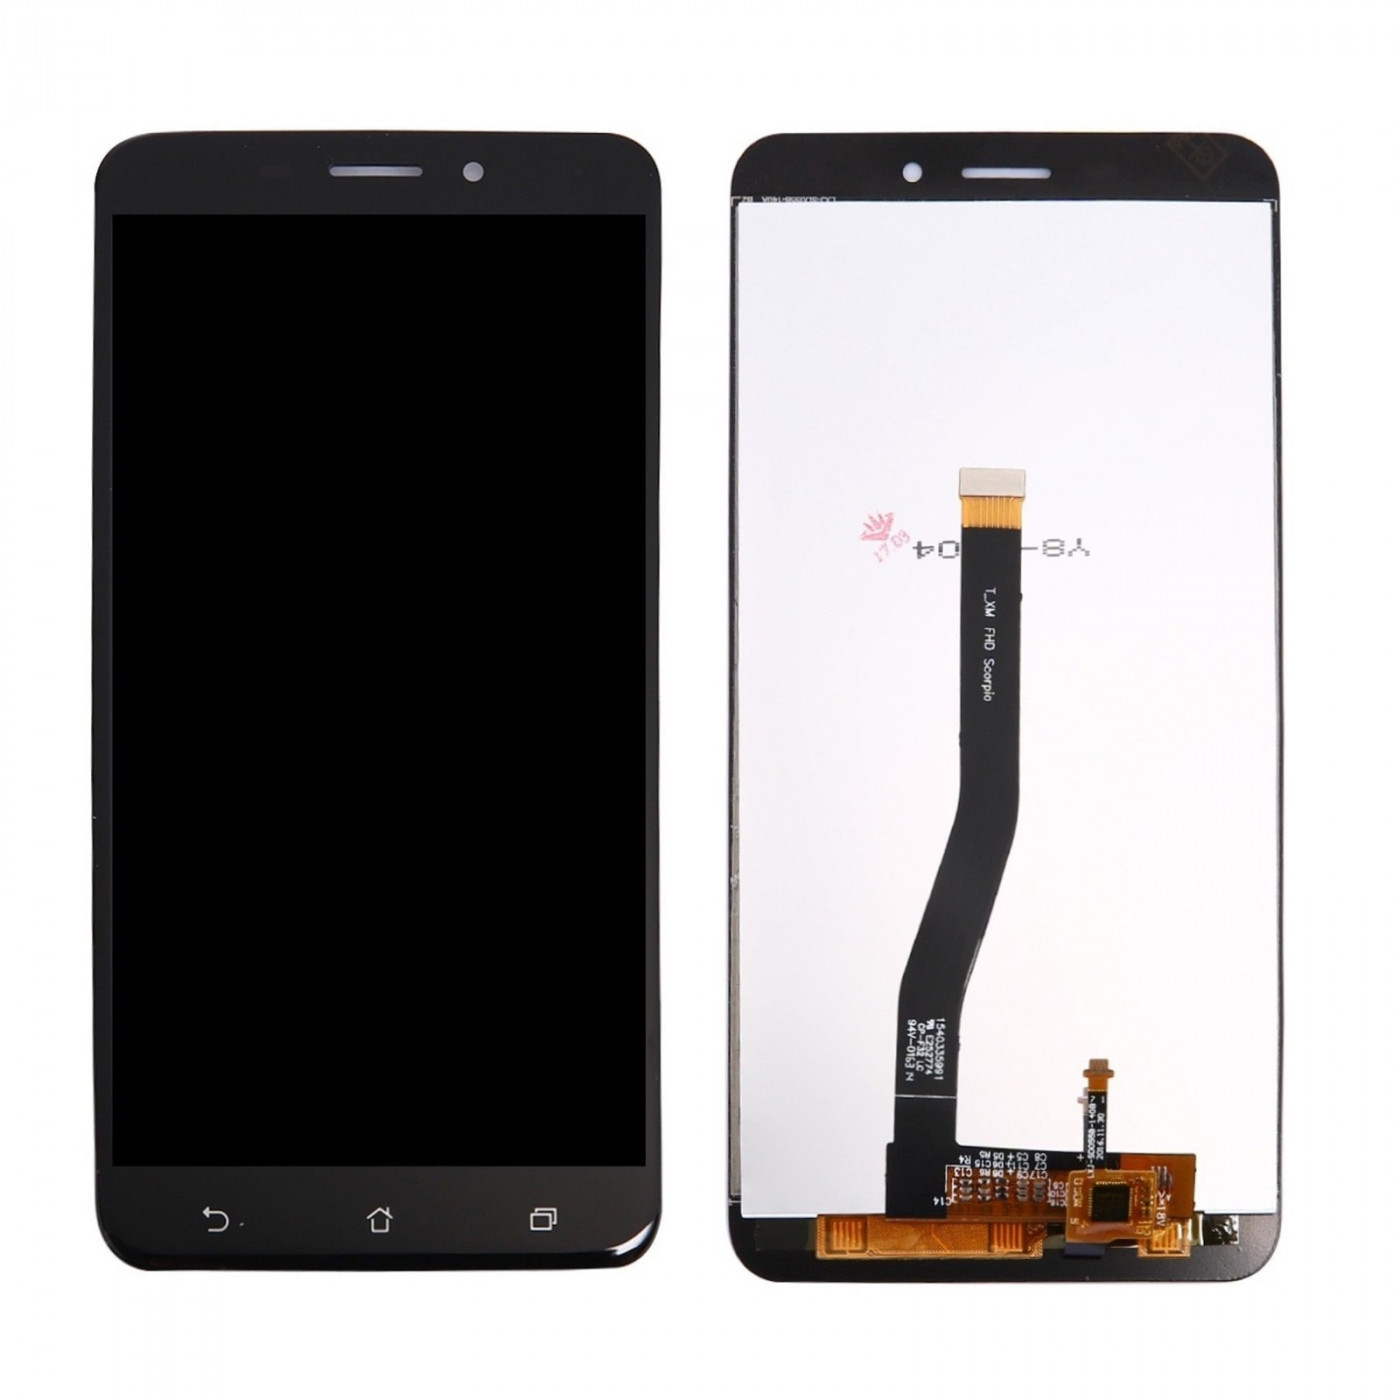 TOUCH SCREEN GLASS + LCD DISPLAY For Asus Zenfone 3 Laser ZC551KL Z01BS Black